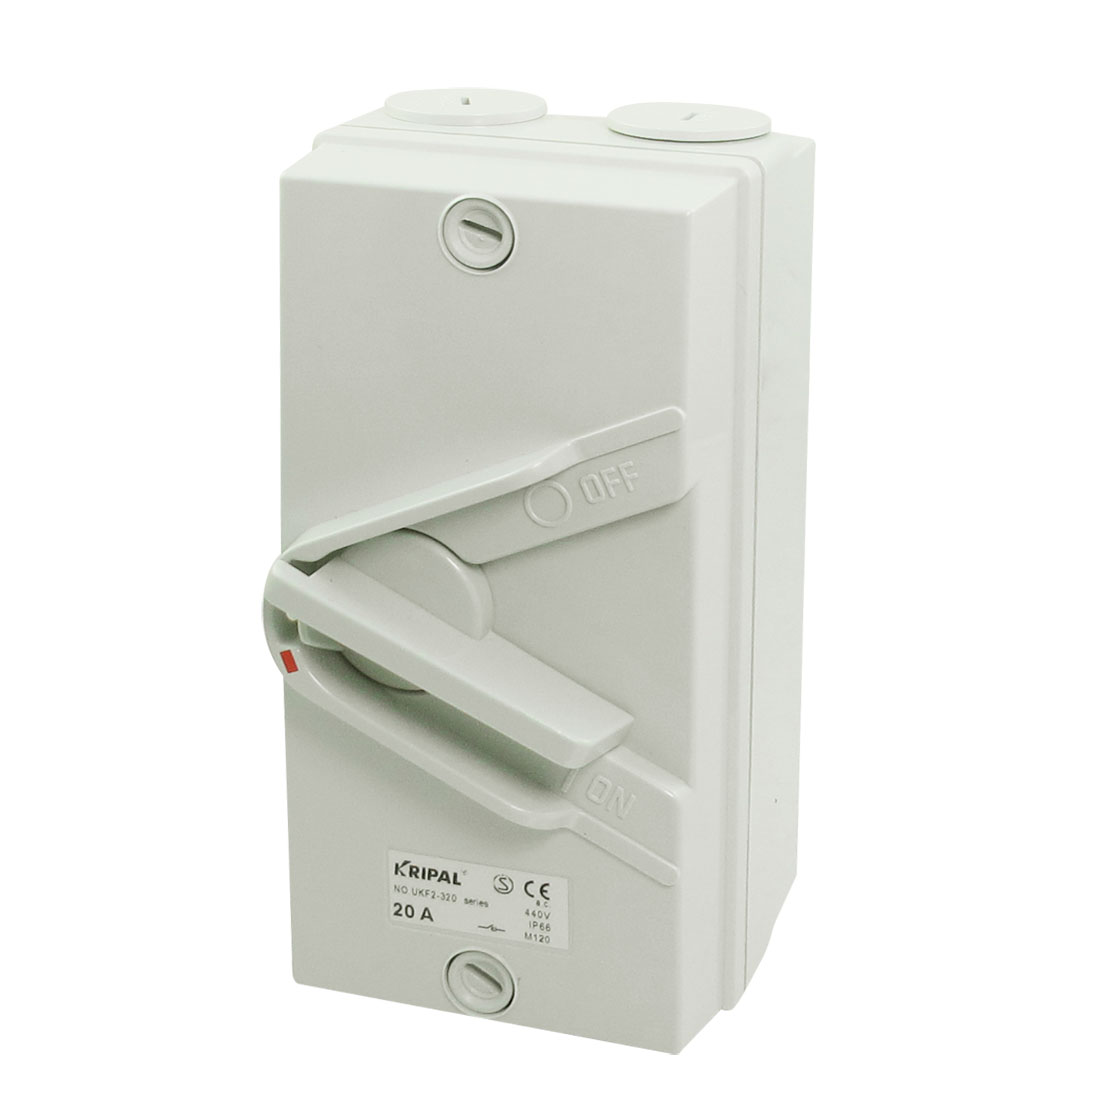 2-Postion Triple Pole IP66 Weatherproof Surface Isolatoion Switch AC 440V 20A